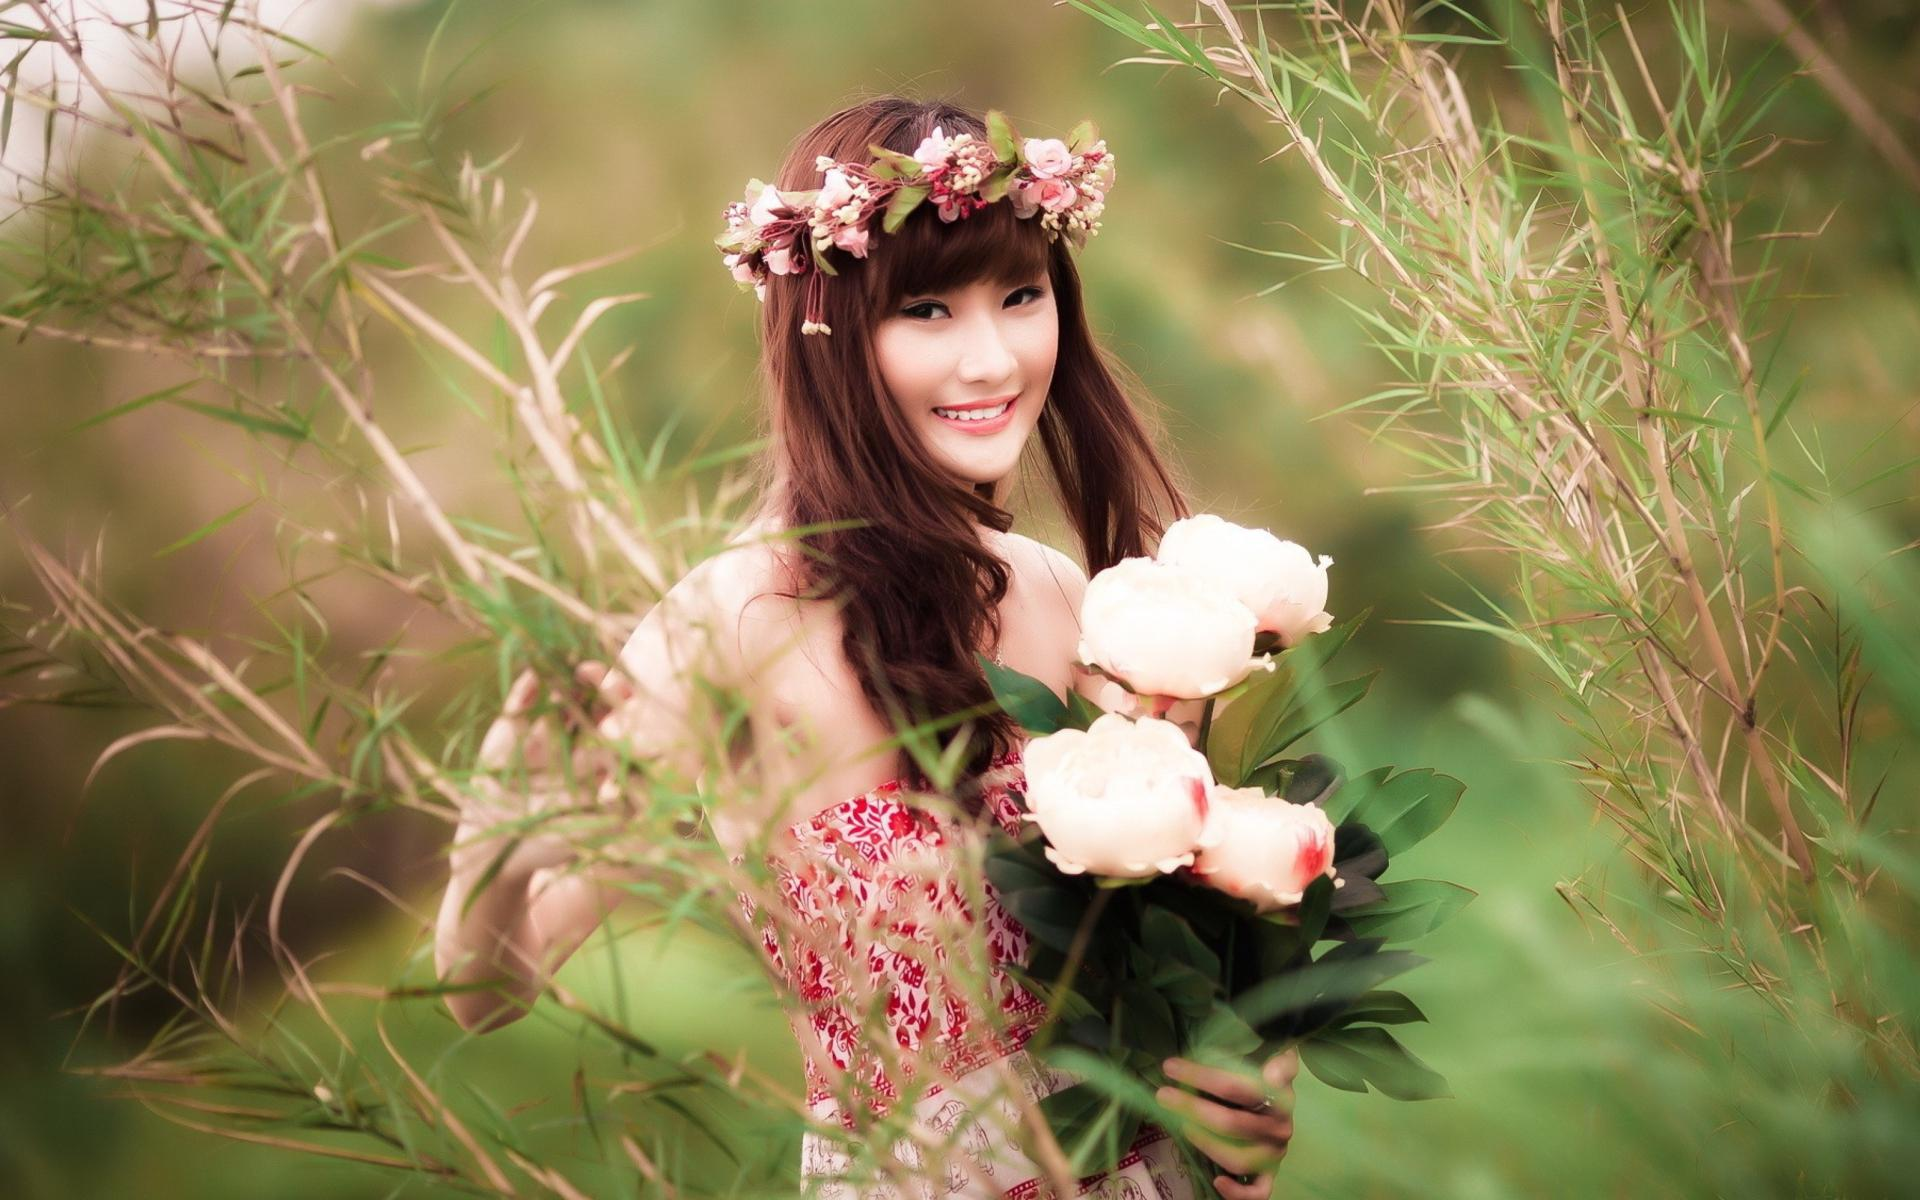 Girls And Flowers Wallpapers - Wallpaper Cave